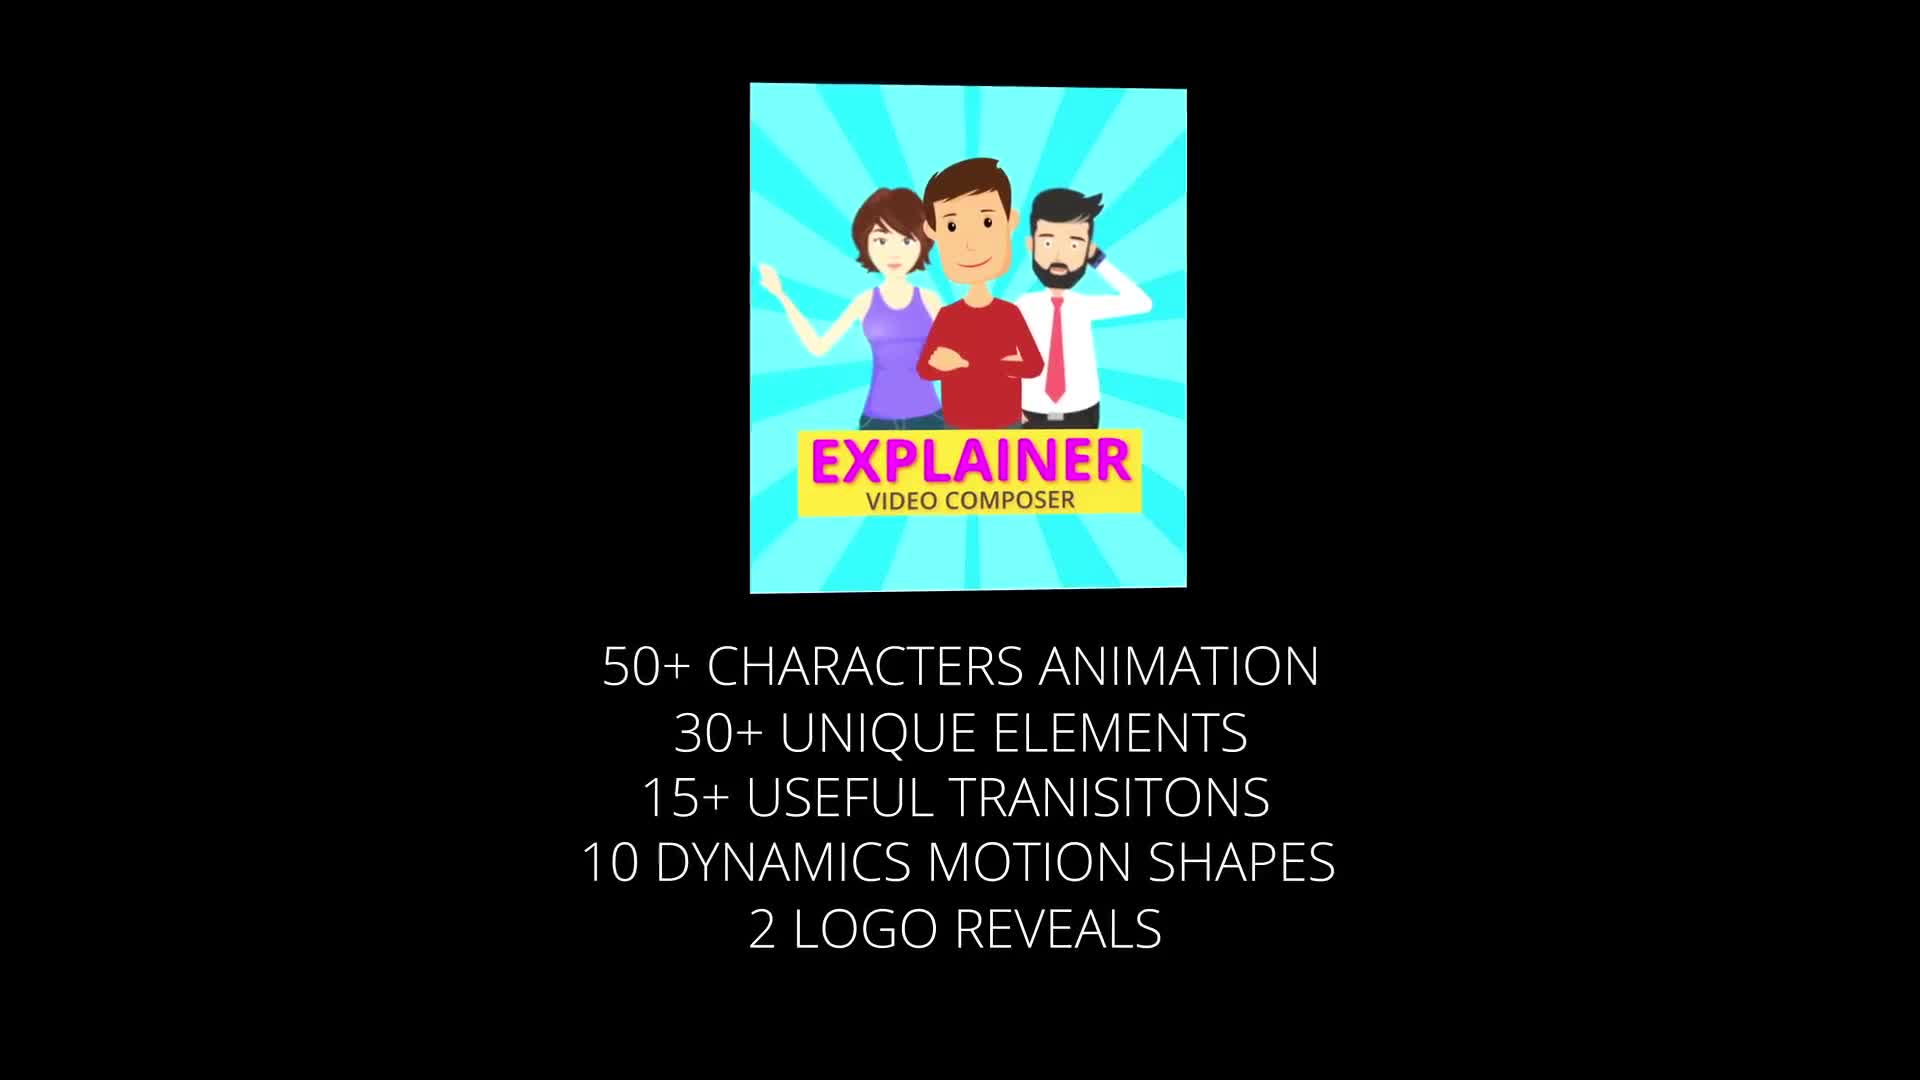 Character Animation Composer Explainer Video Toolkit - Download Videohive 17045232